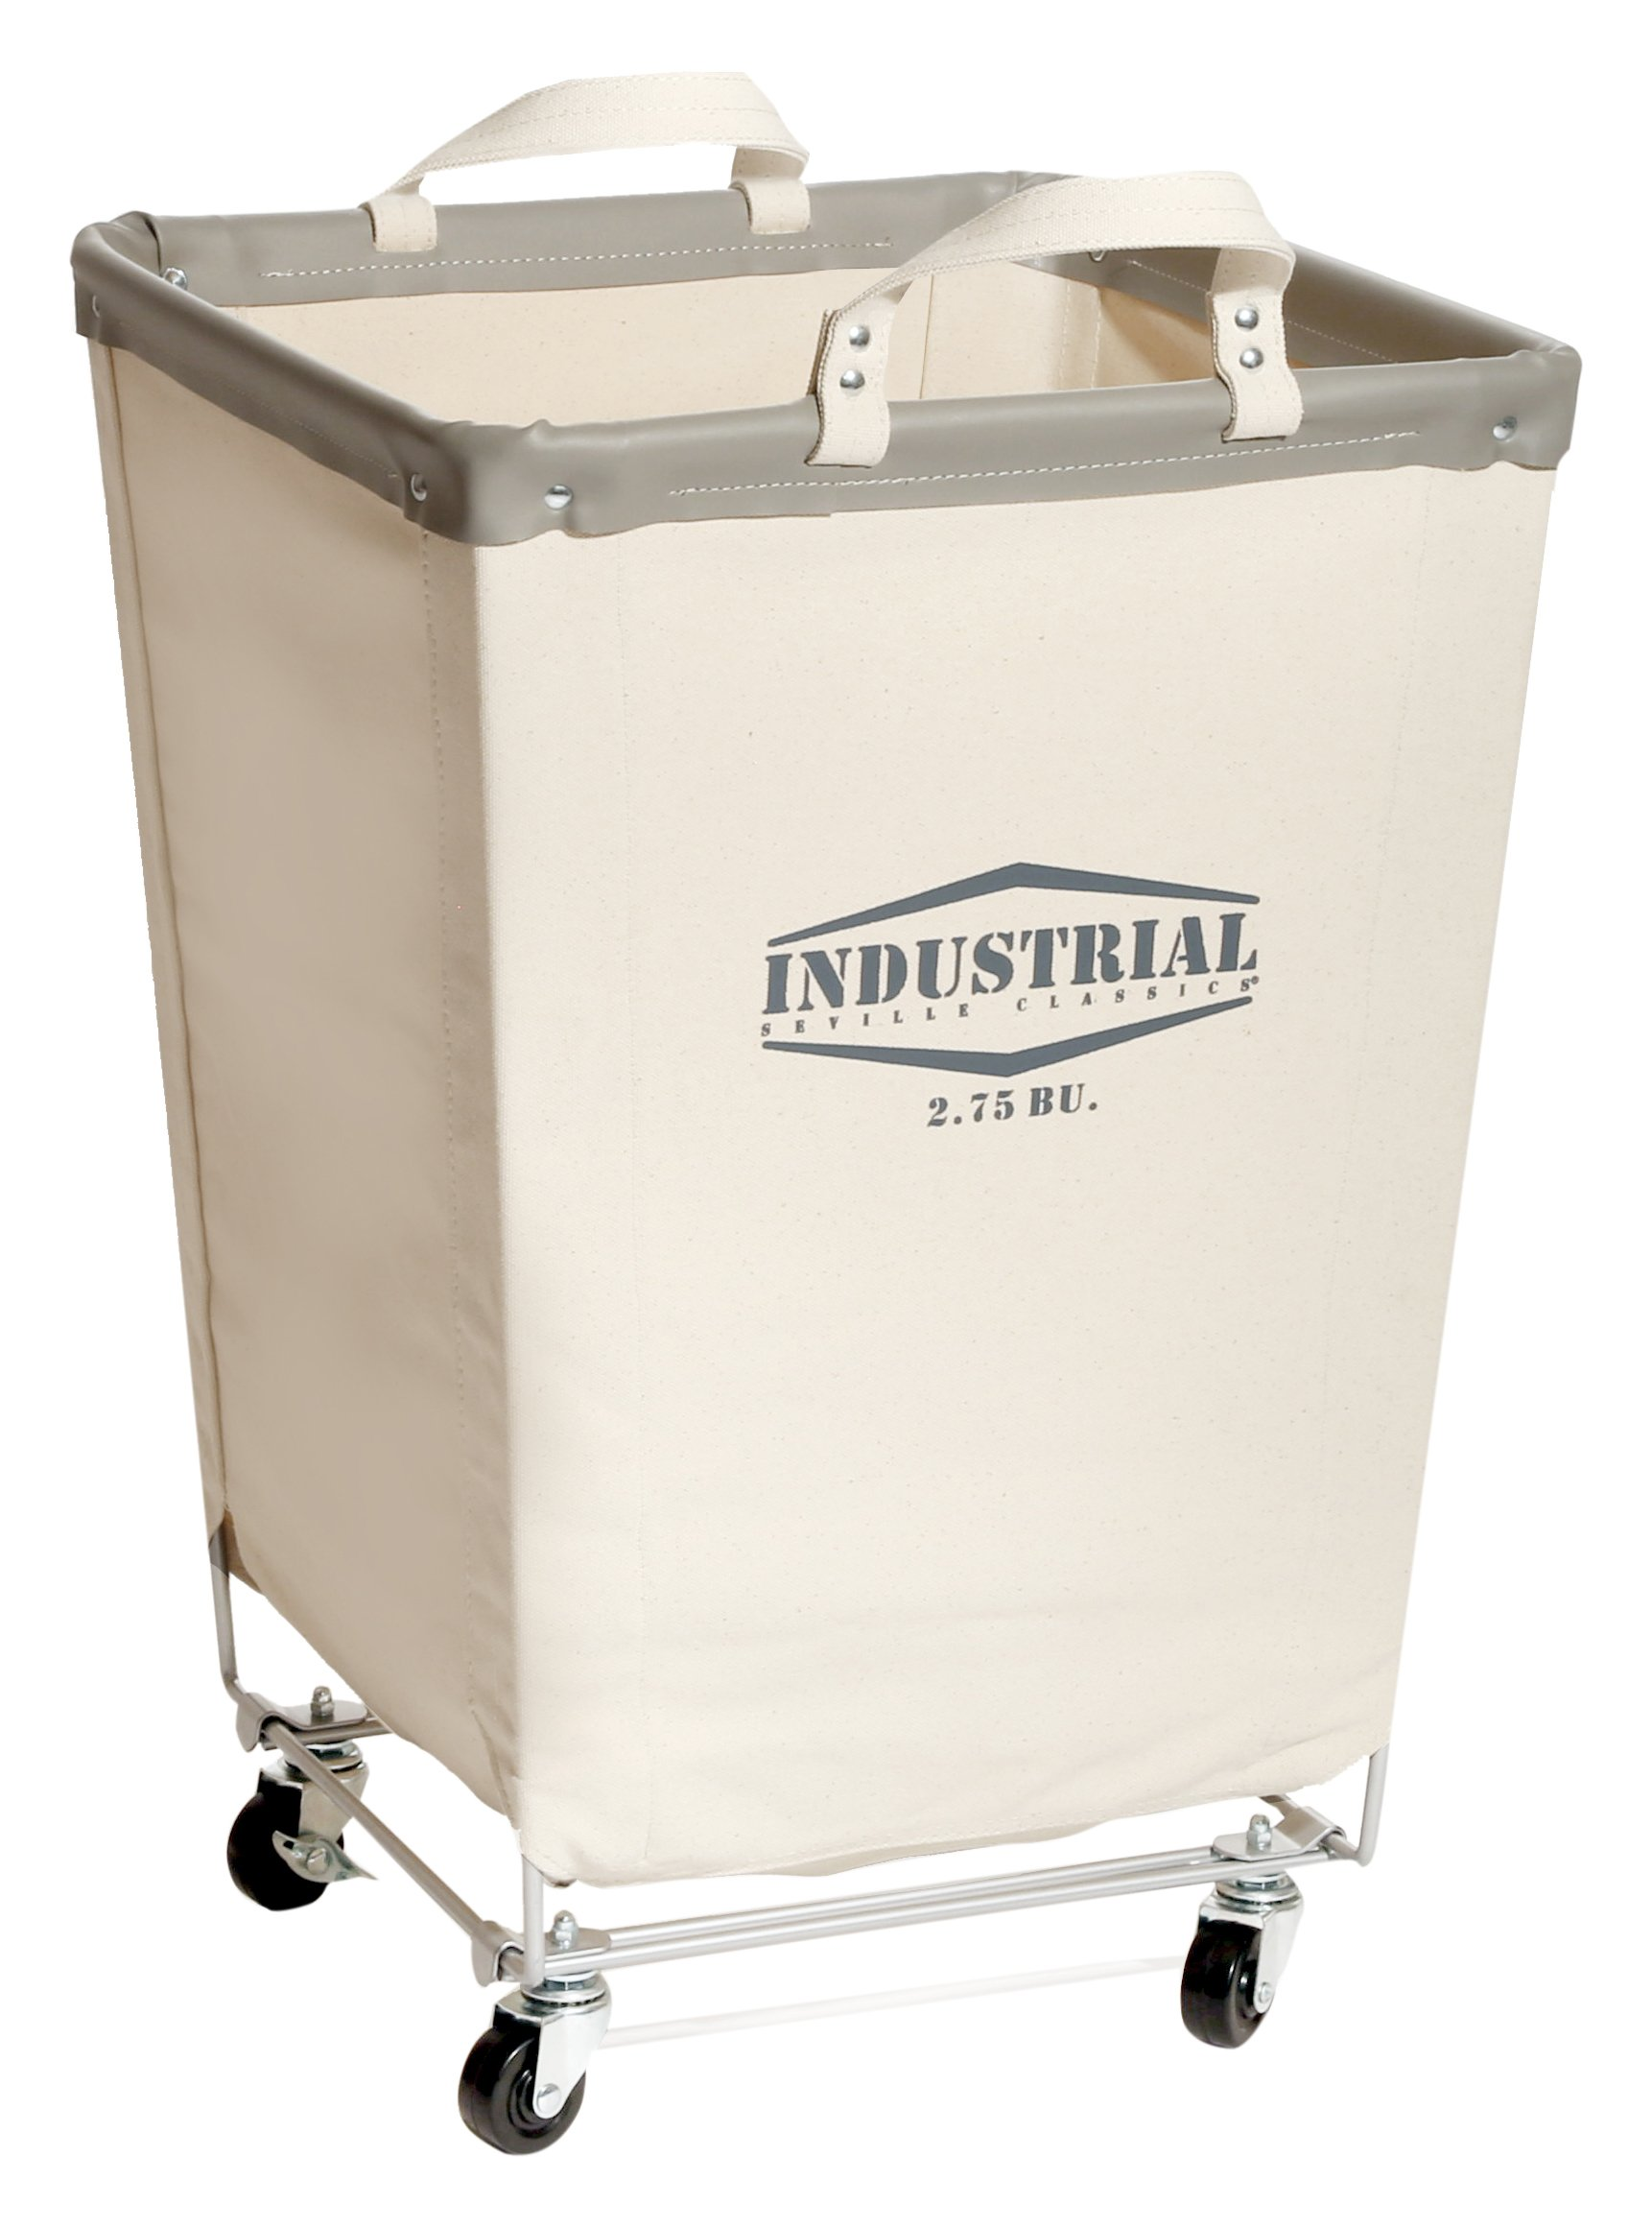 seville classics commercial heavy duty canvas laundry hamper with wheels ebay. Black Bedroom Furniture Sets. Home Design Ideas